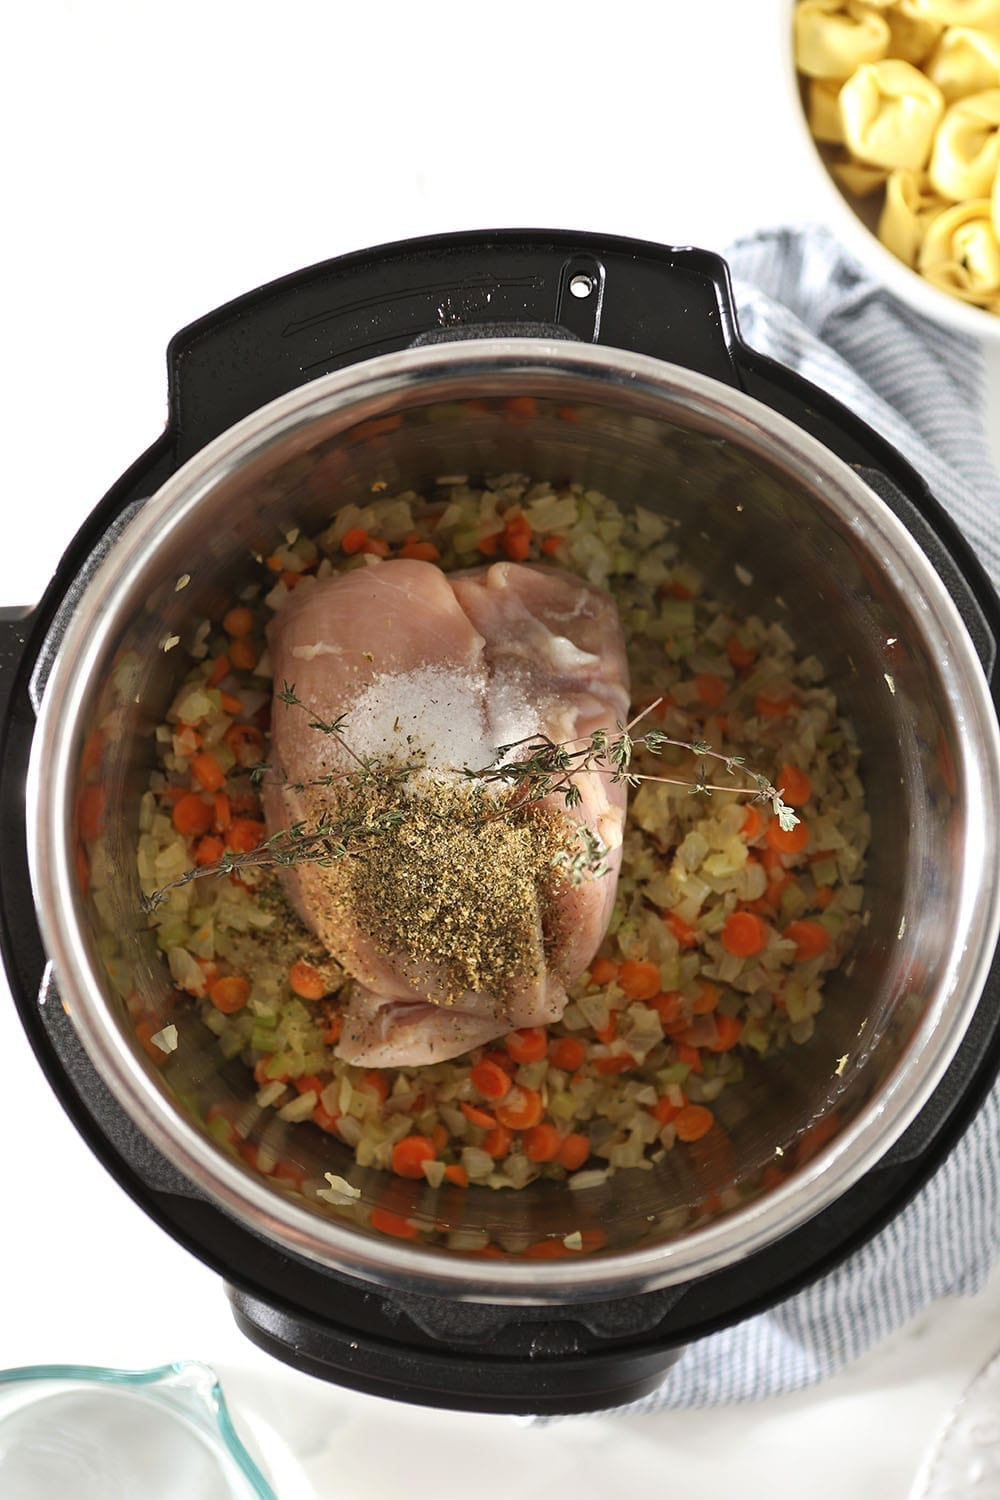 Chicken, veggies and seasonings are laid in the INstant Pot, before cooking